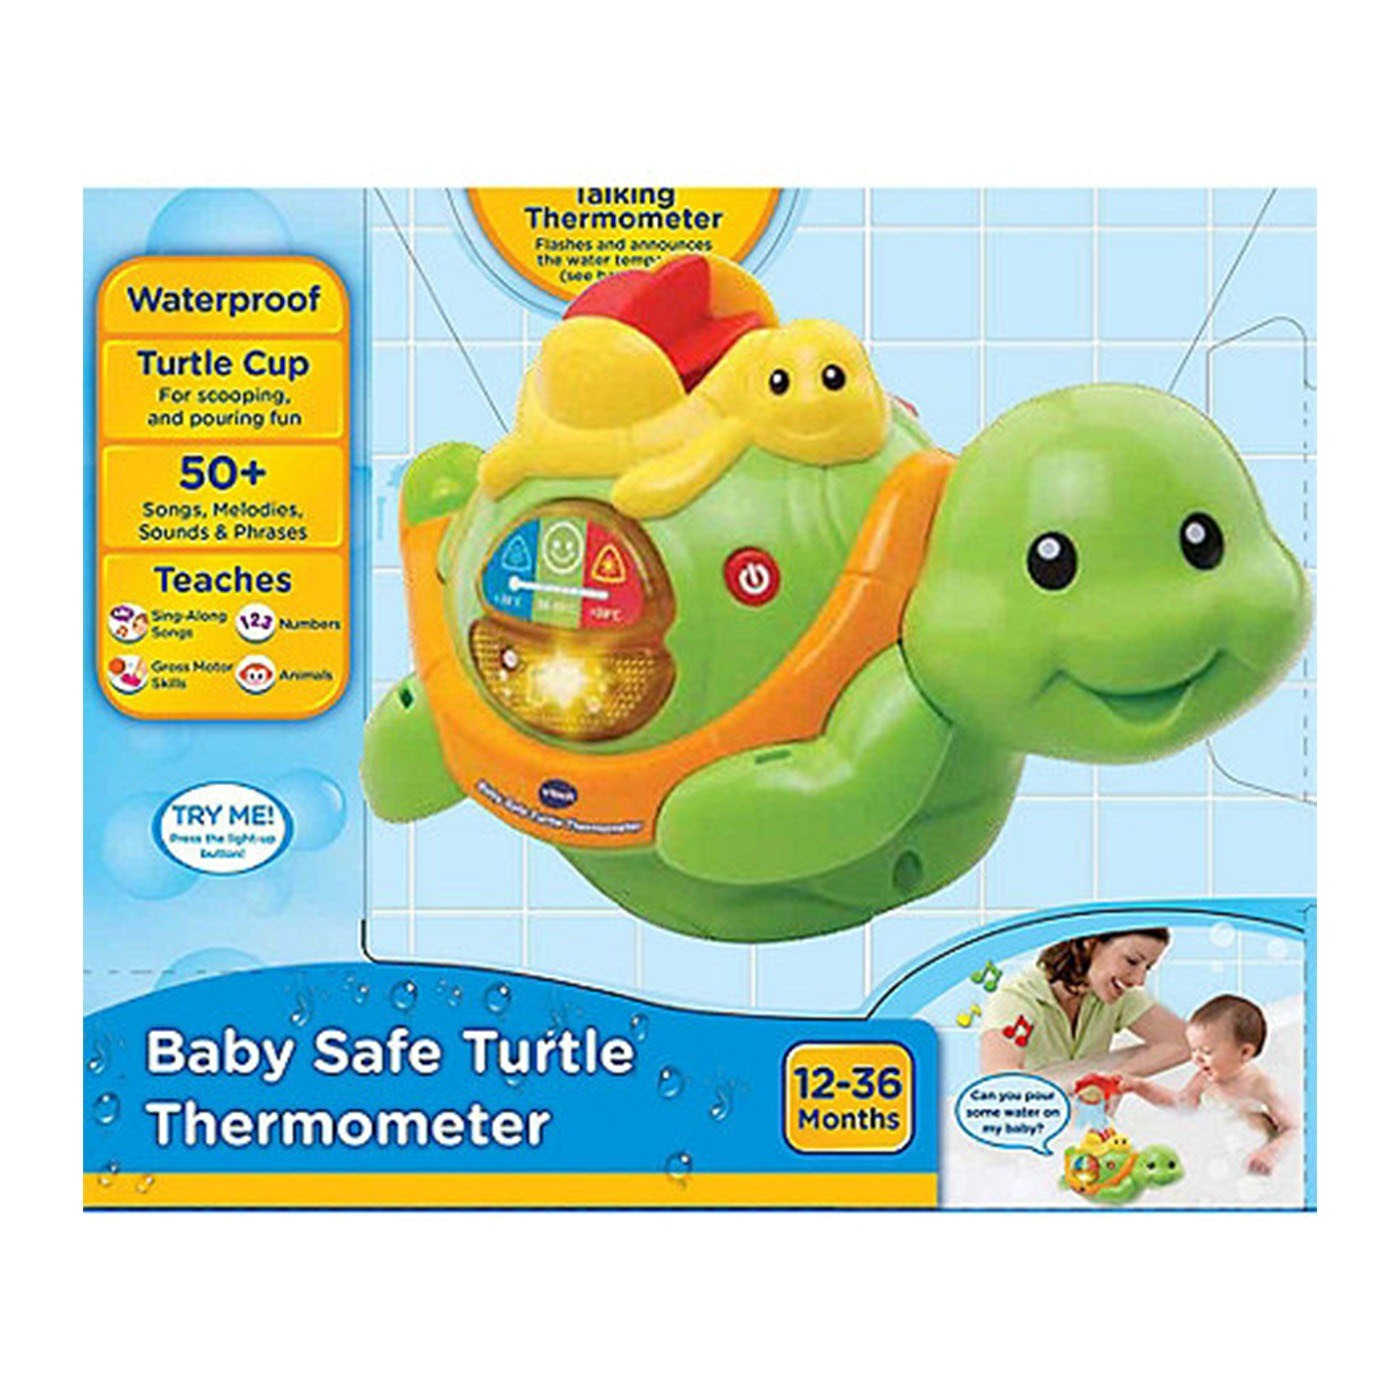 BABY SAFE TURTLE THERMOMETER